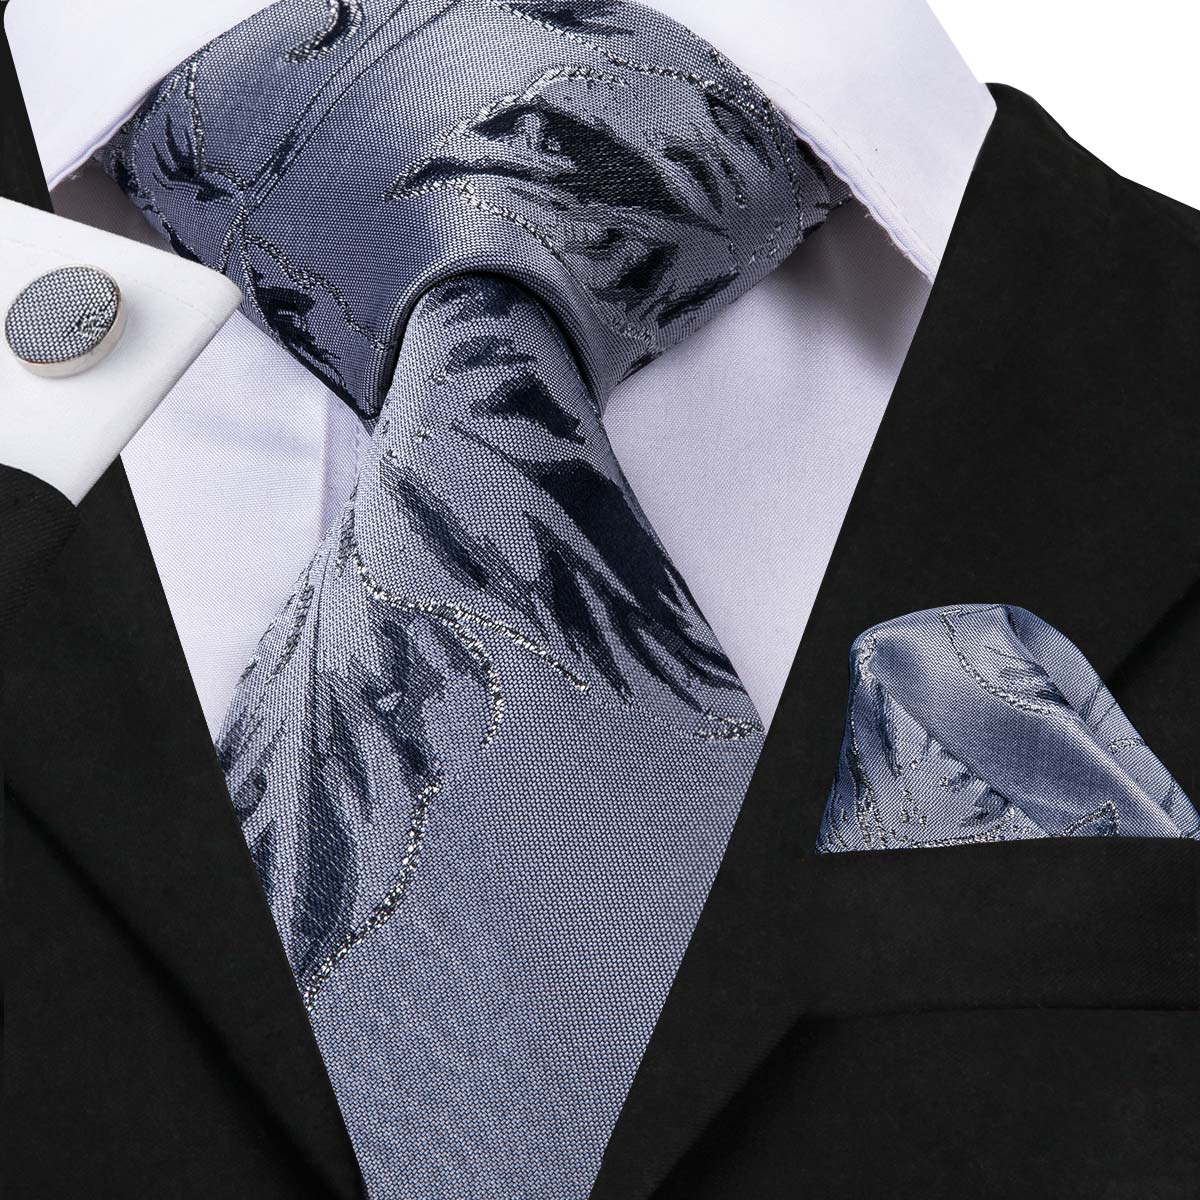 Hi-Tie Hot Sale Top Quality Ties Gravatas Skinny Neck Ties For Men New Fashion Styles Neckties Hanky Cufflinks Set C-3060